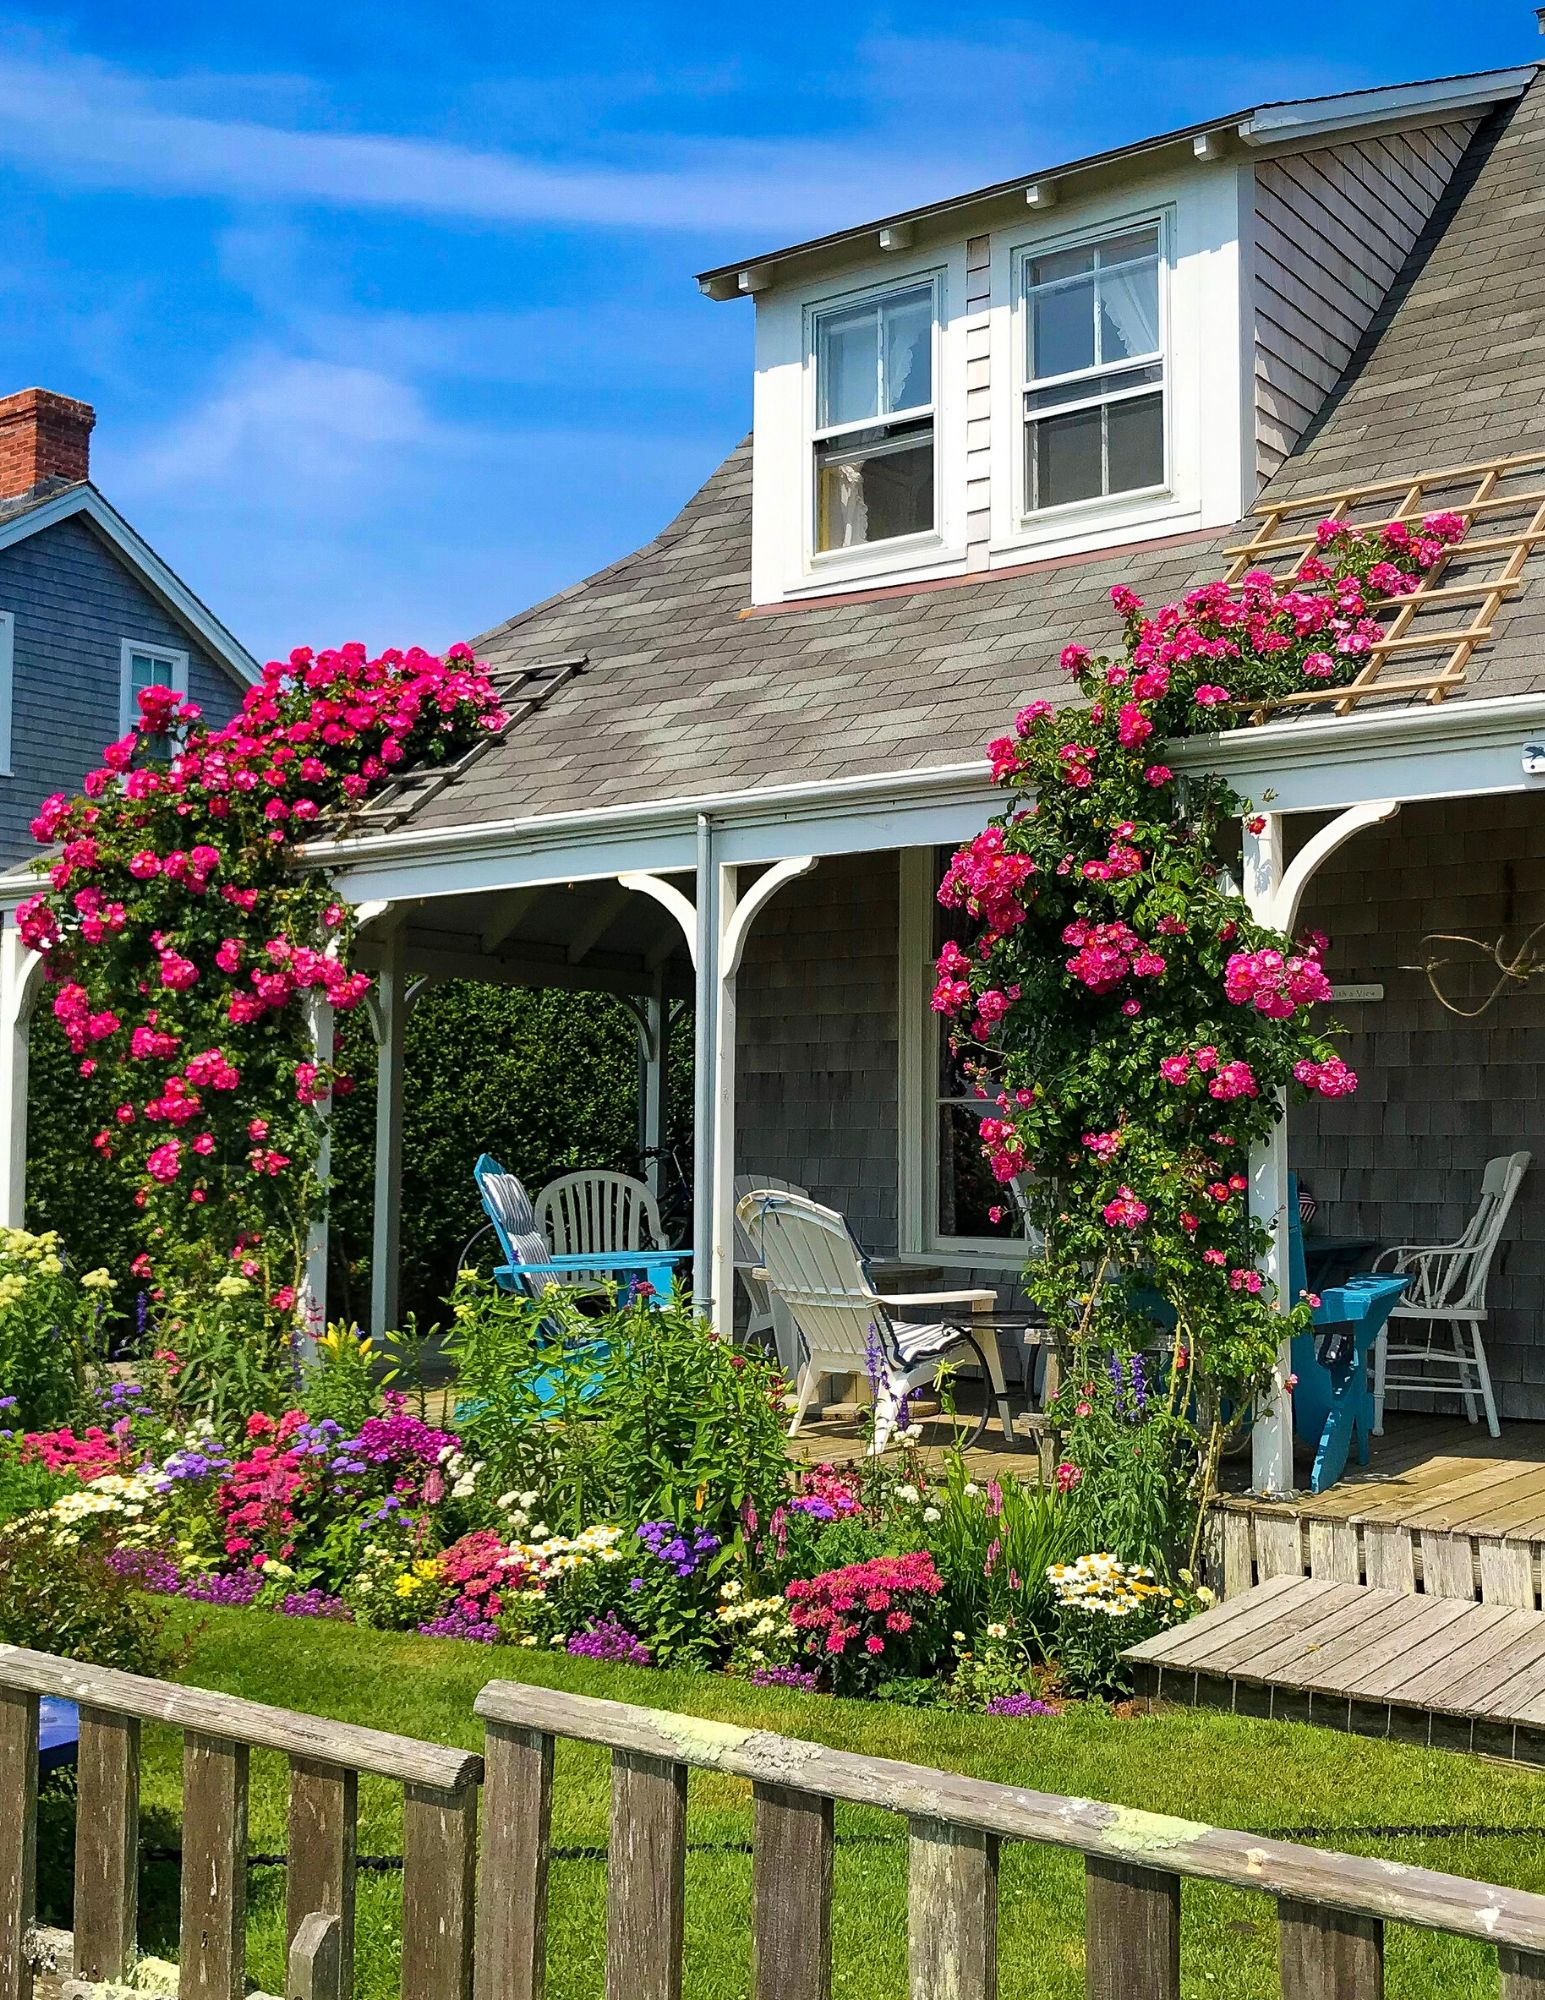 Nantucket Rose Covered Cottages in Sconset-2